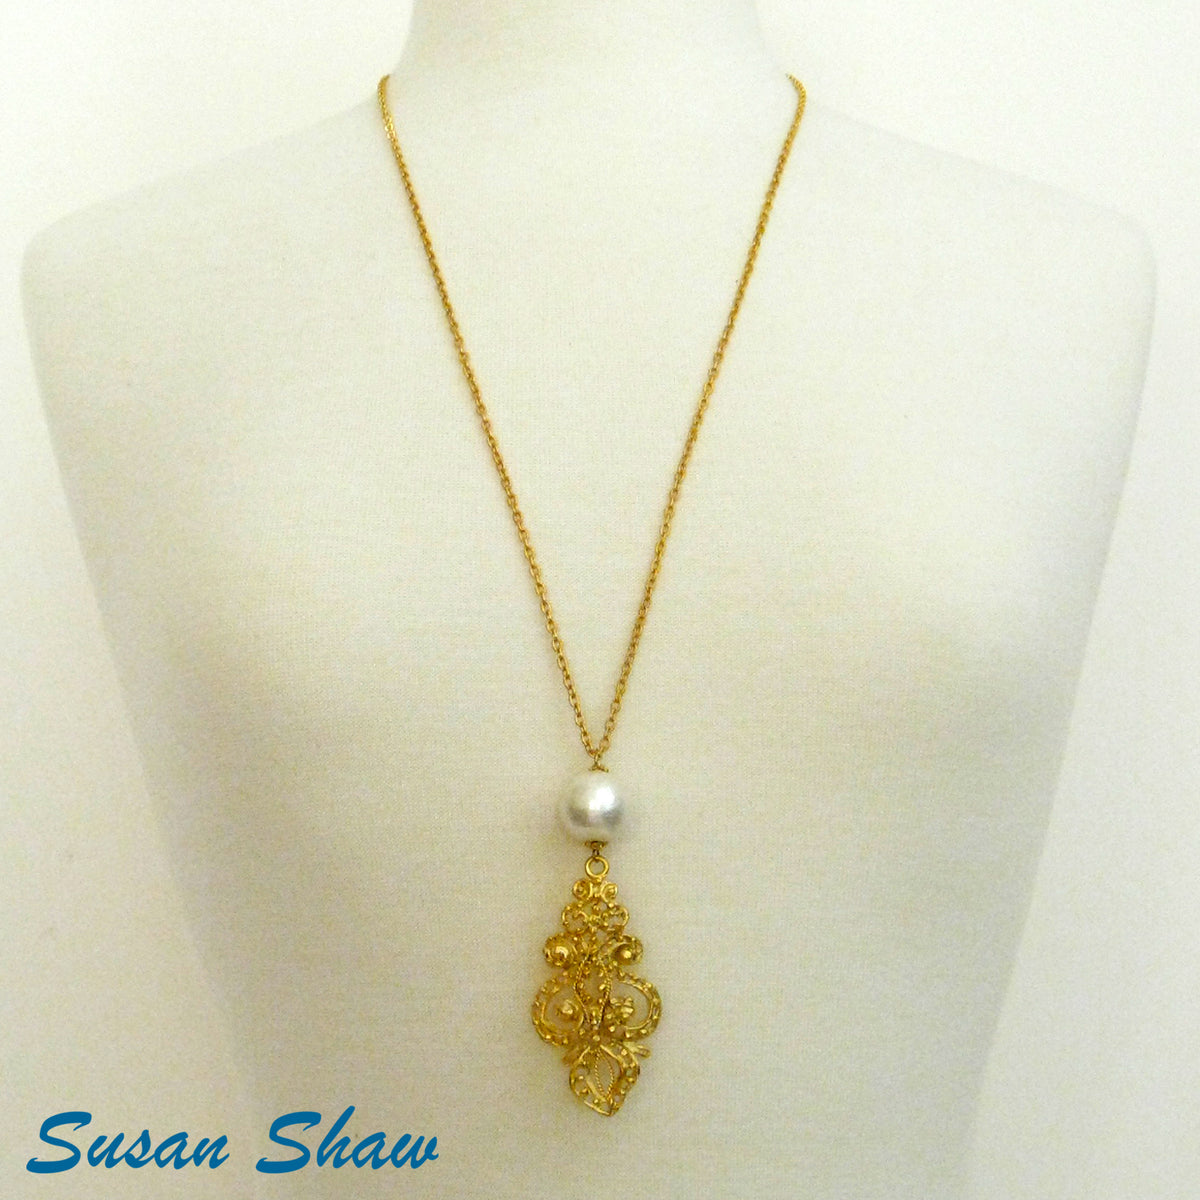 SUSAN SHAW FRENCH SCROLL DROP PEARL & CHAIN NECKLACE